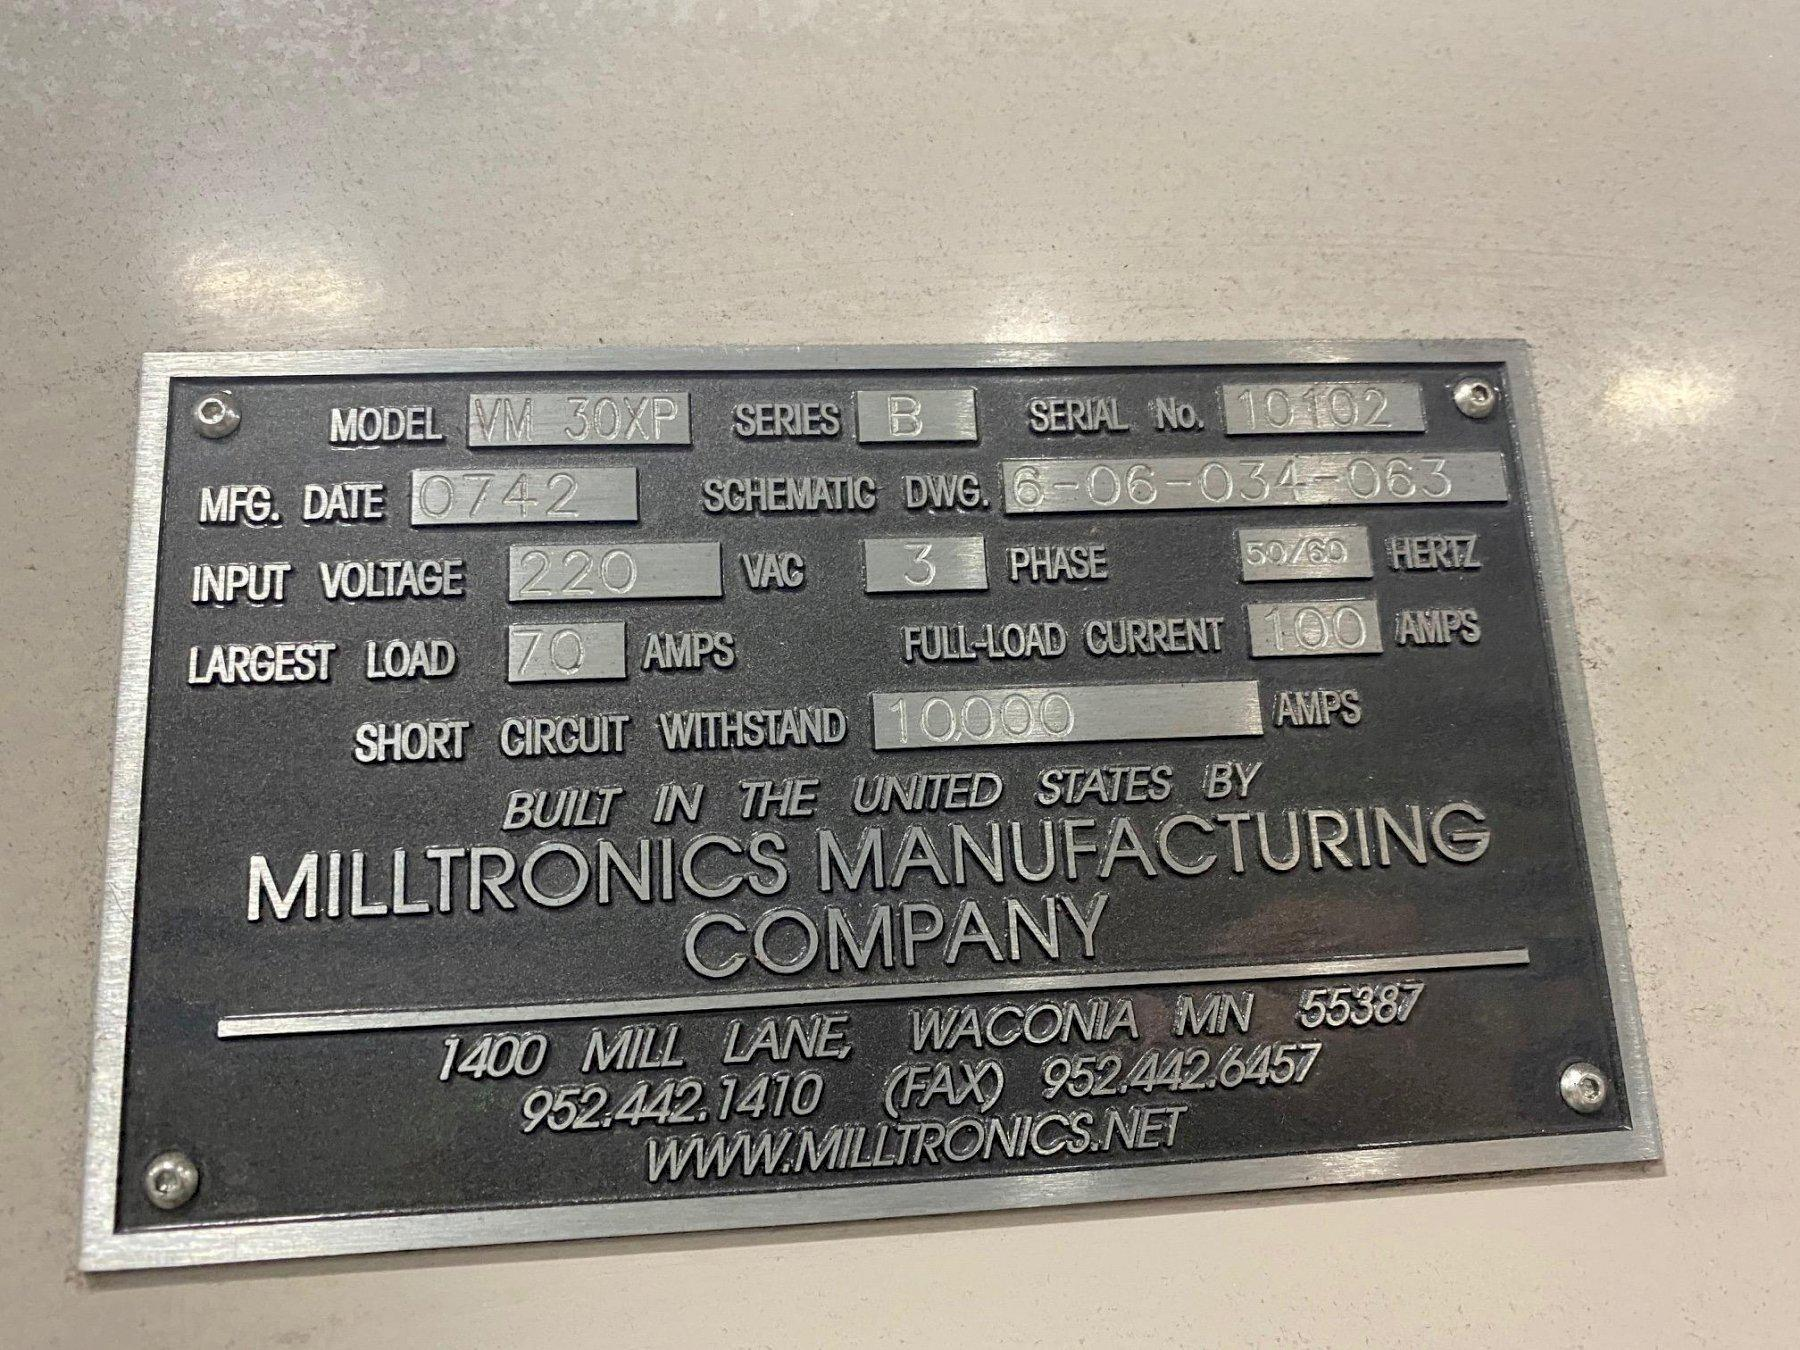 Milltronics Model VM30XP Vertical Machining Cente, S/N 10102 - details pending